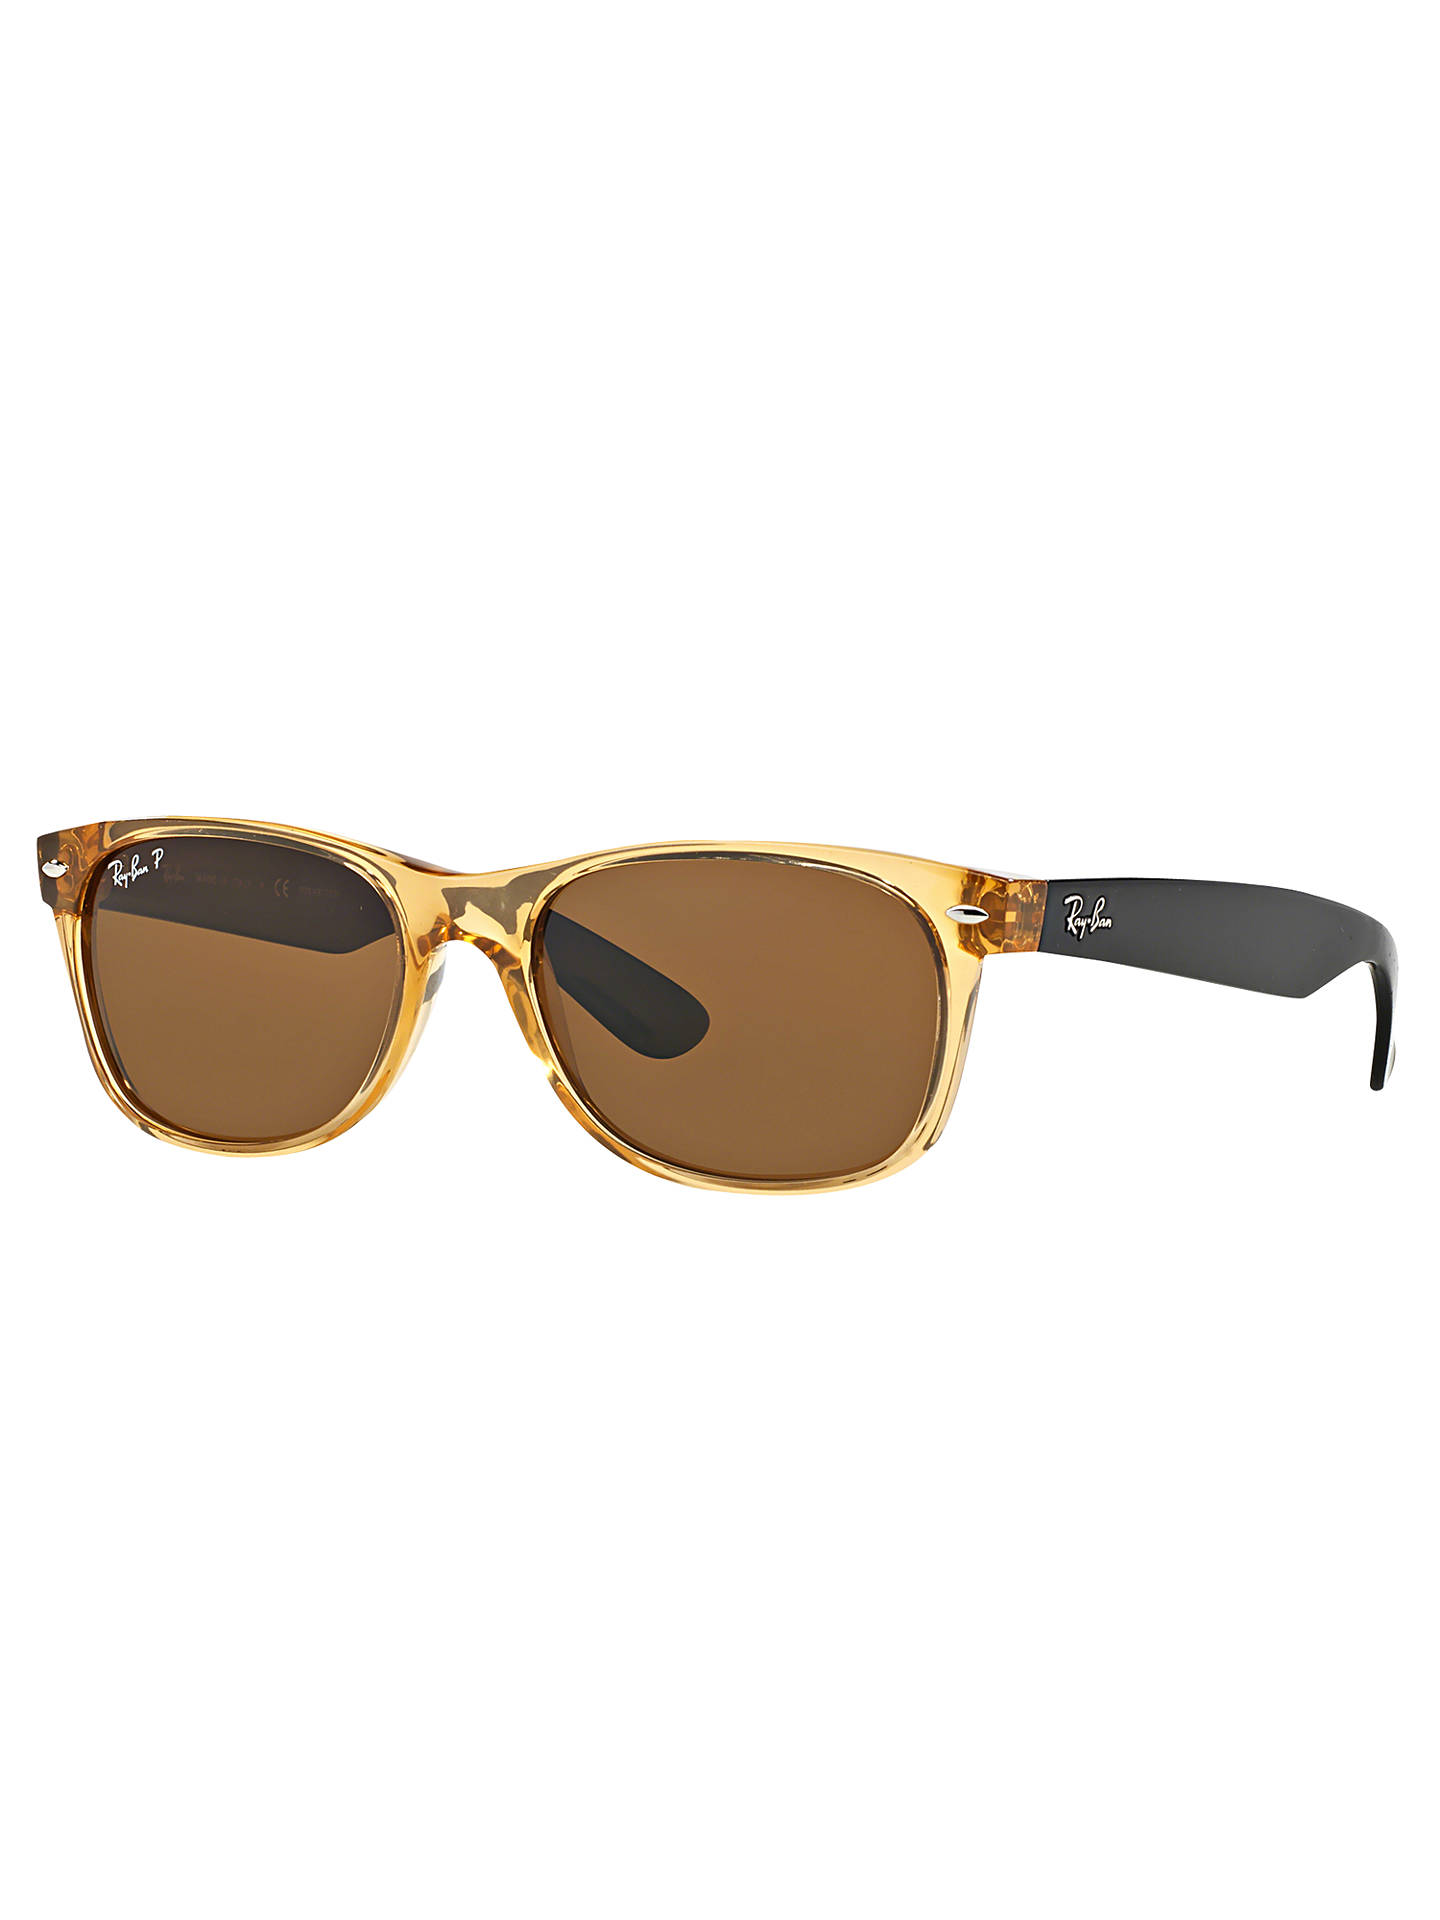 27600273de9 BuyRay-Ban RB2132 New Wayfarer Polarised Sunglasses